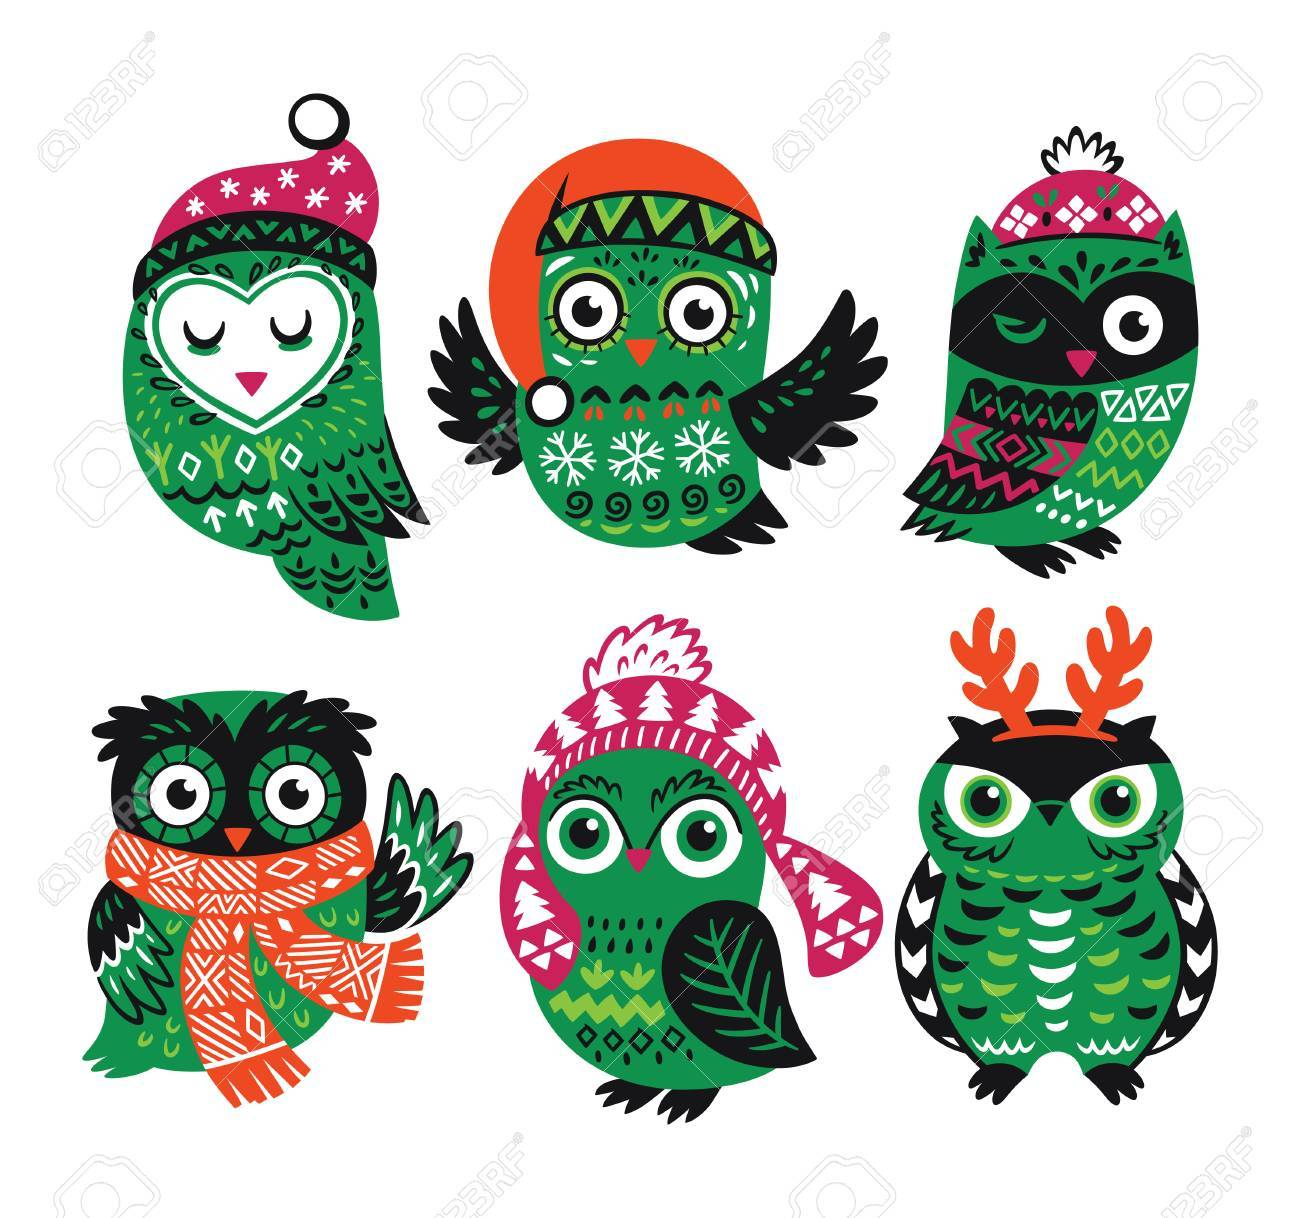 Cute cartoon owls in knitted hats scarves and reindeer antlers cute cartoon owls in knitted hats scarves and reindeer antlers vector illustration vintage voltagebd Images